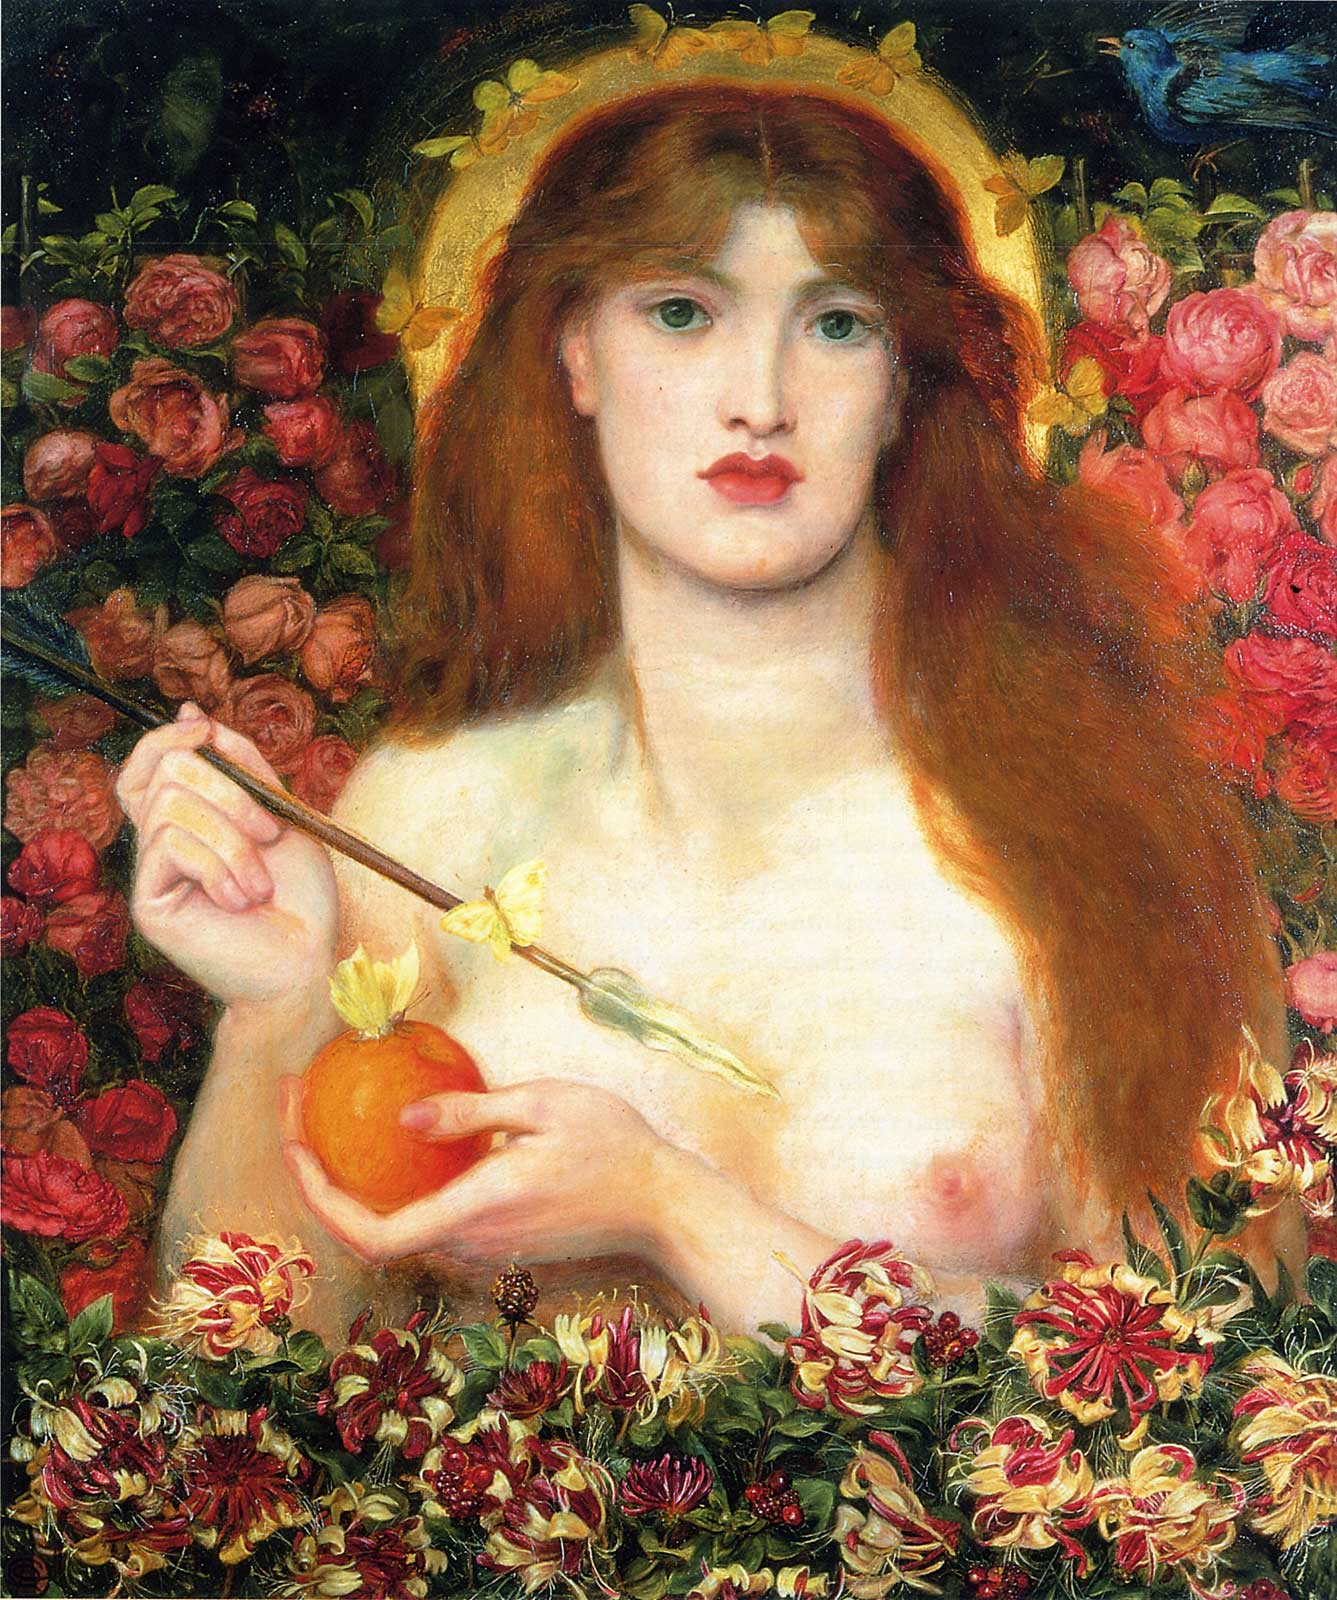 Dante Gabriel Rossetti - Venus Verticordia - 1864-68 - The Russell-Cotes Art Gallery and Museum, Bournemouth